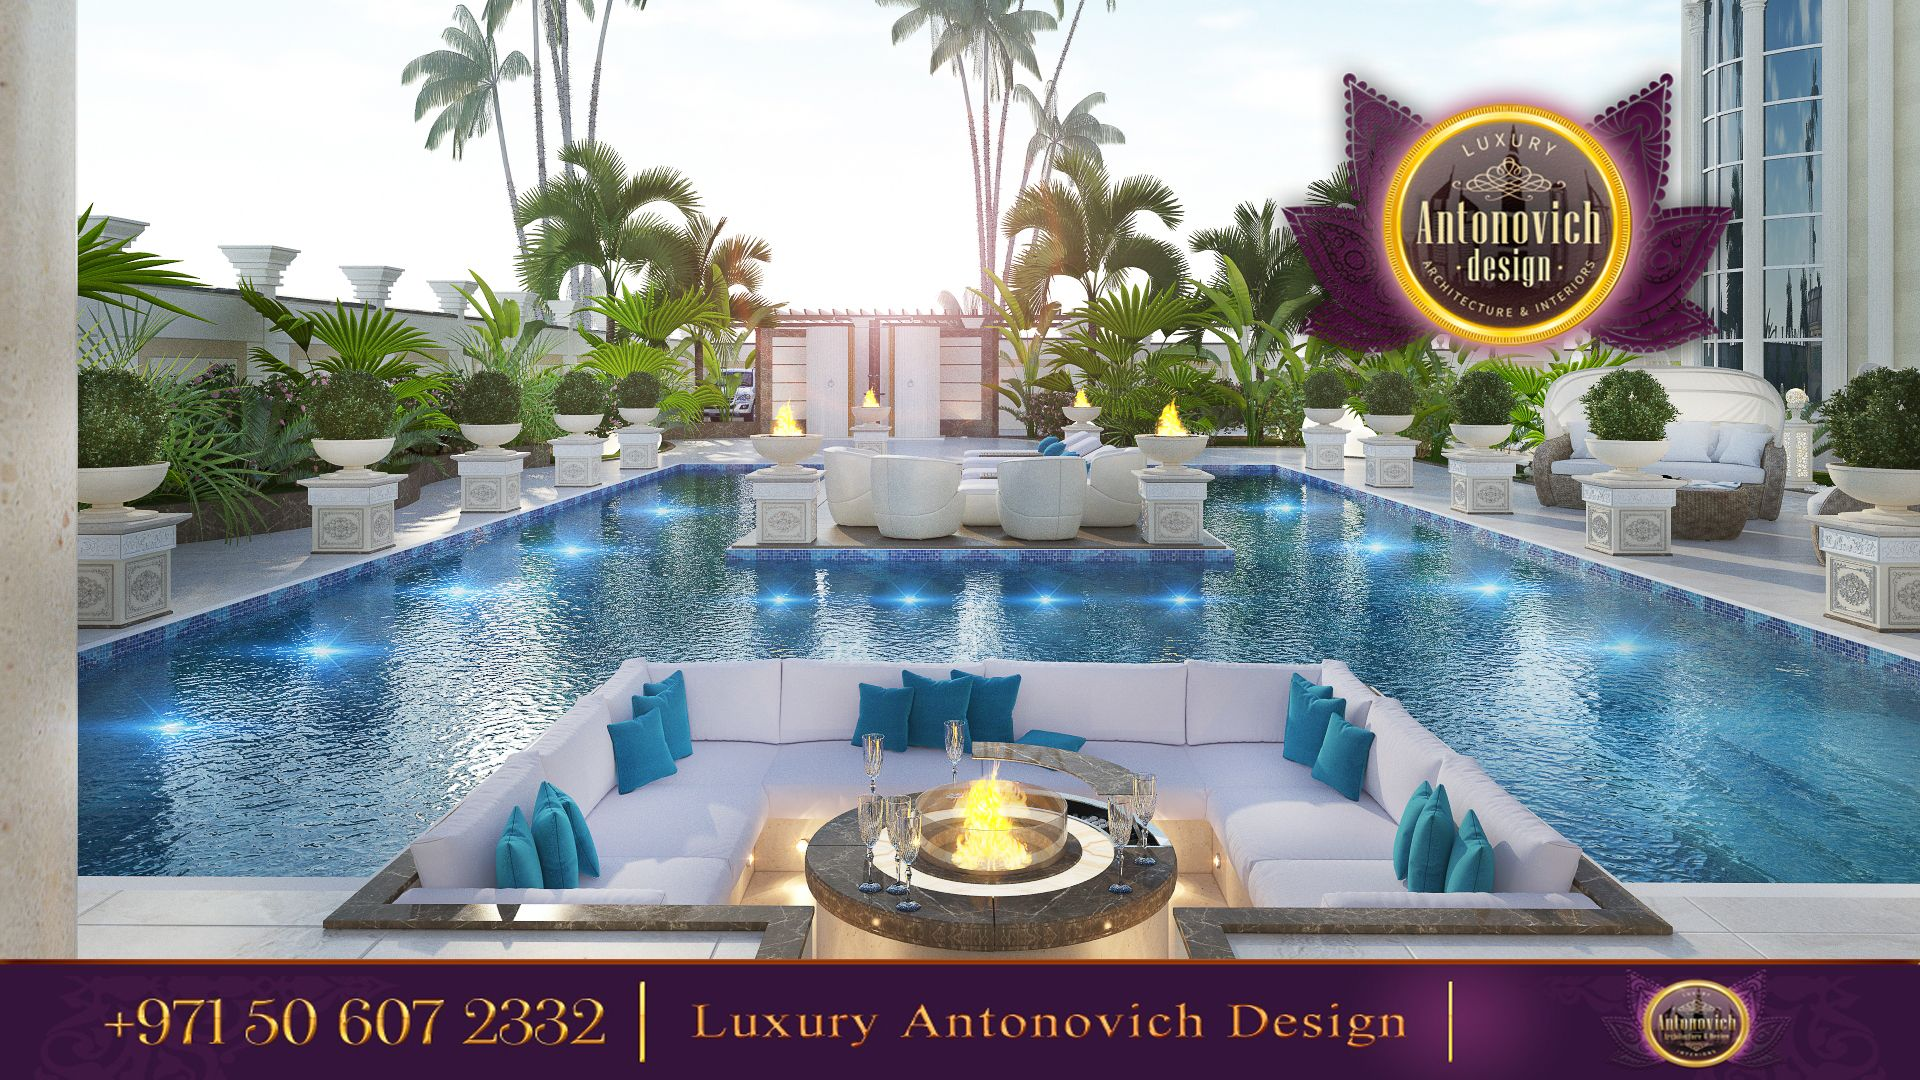 Beautiful dressing room design in dubai by luxury antonovich design - Gorgeous Swimming Pool Area By Luxury Antonovich Design Everything Is Thought Out To The Last